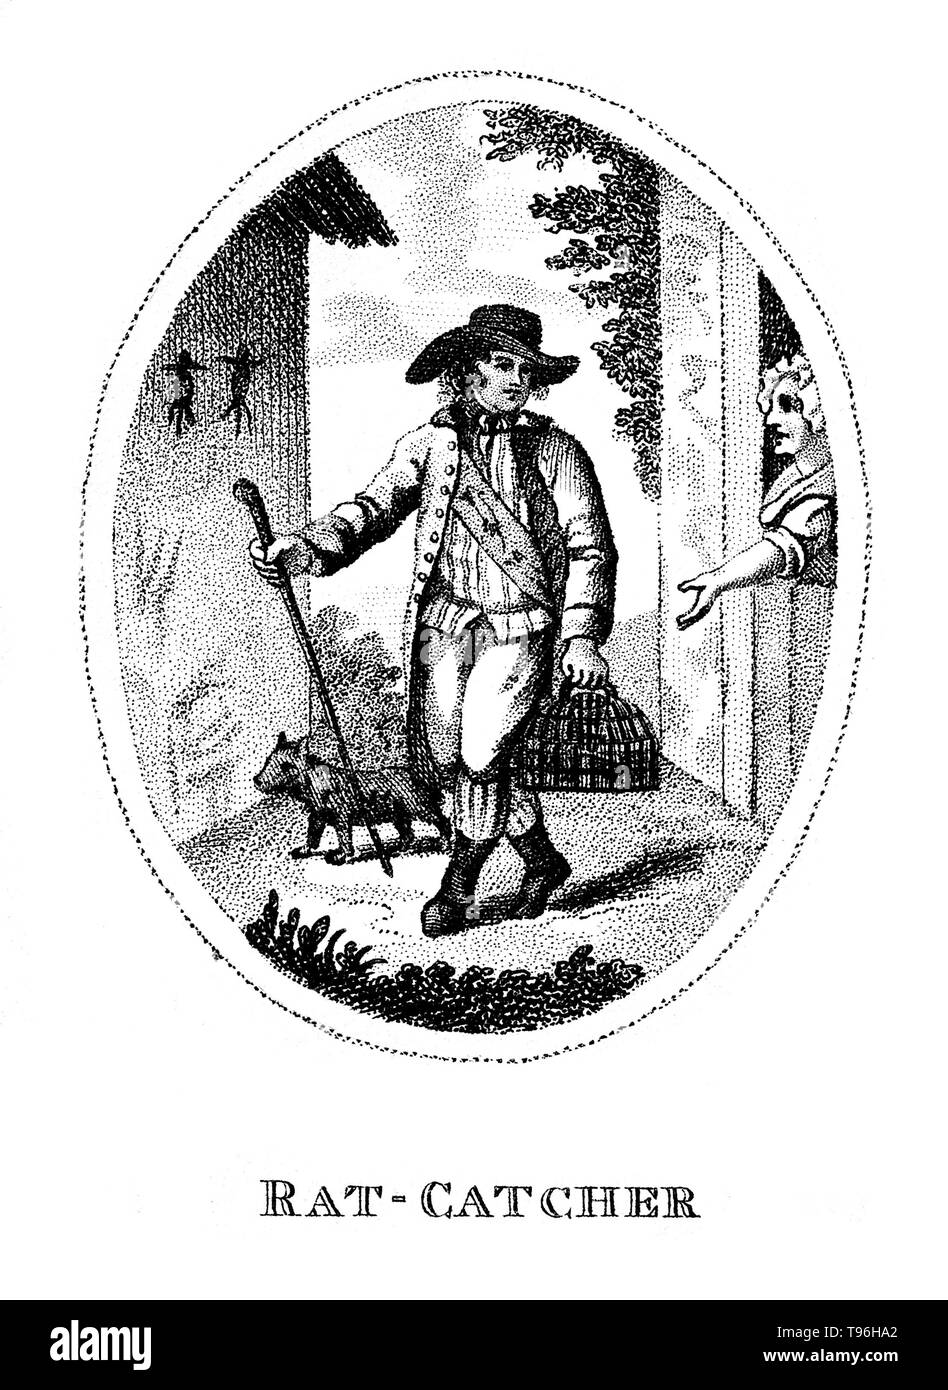 A rat-catcher and his dog; to the right a woman looks on. A rat-catcher is a person who practices rat-catching as a professional form of pest control. Keeping the rat population under control was practiced in Europe to prevent the spread of diseases, most notoriously the Black Plague, and to prevent damage to food supplies. In modern developed countries, such a professional is otherwise known as a pest control operative or pest technician. Rat-catchers may attempt to capture rats themselves, or release ratters, animals trained or naturally skilled at catching them. They may also set a rat trap - Stock Image